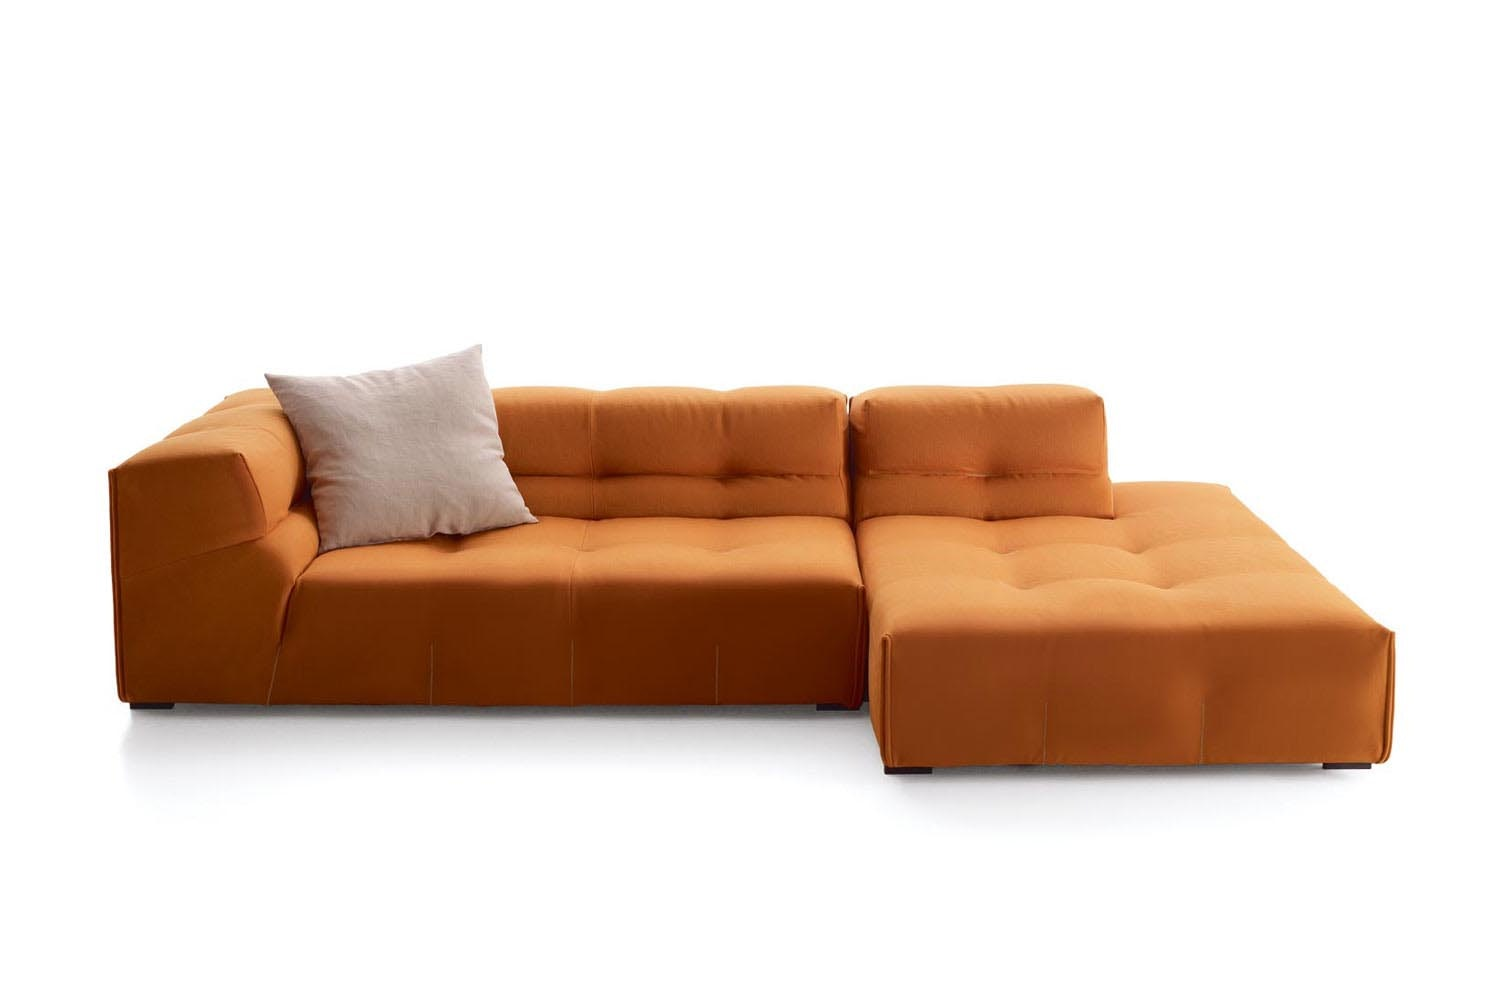 Tufty Too Sofa By Patricia Urquiola For B Amp B Italia Space